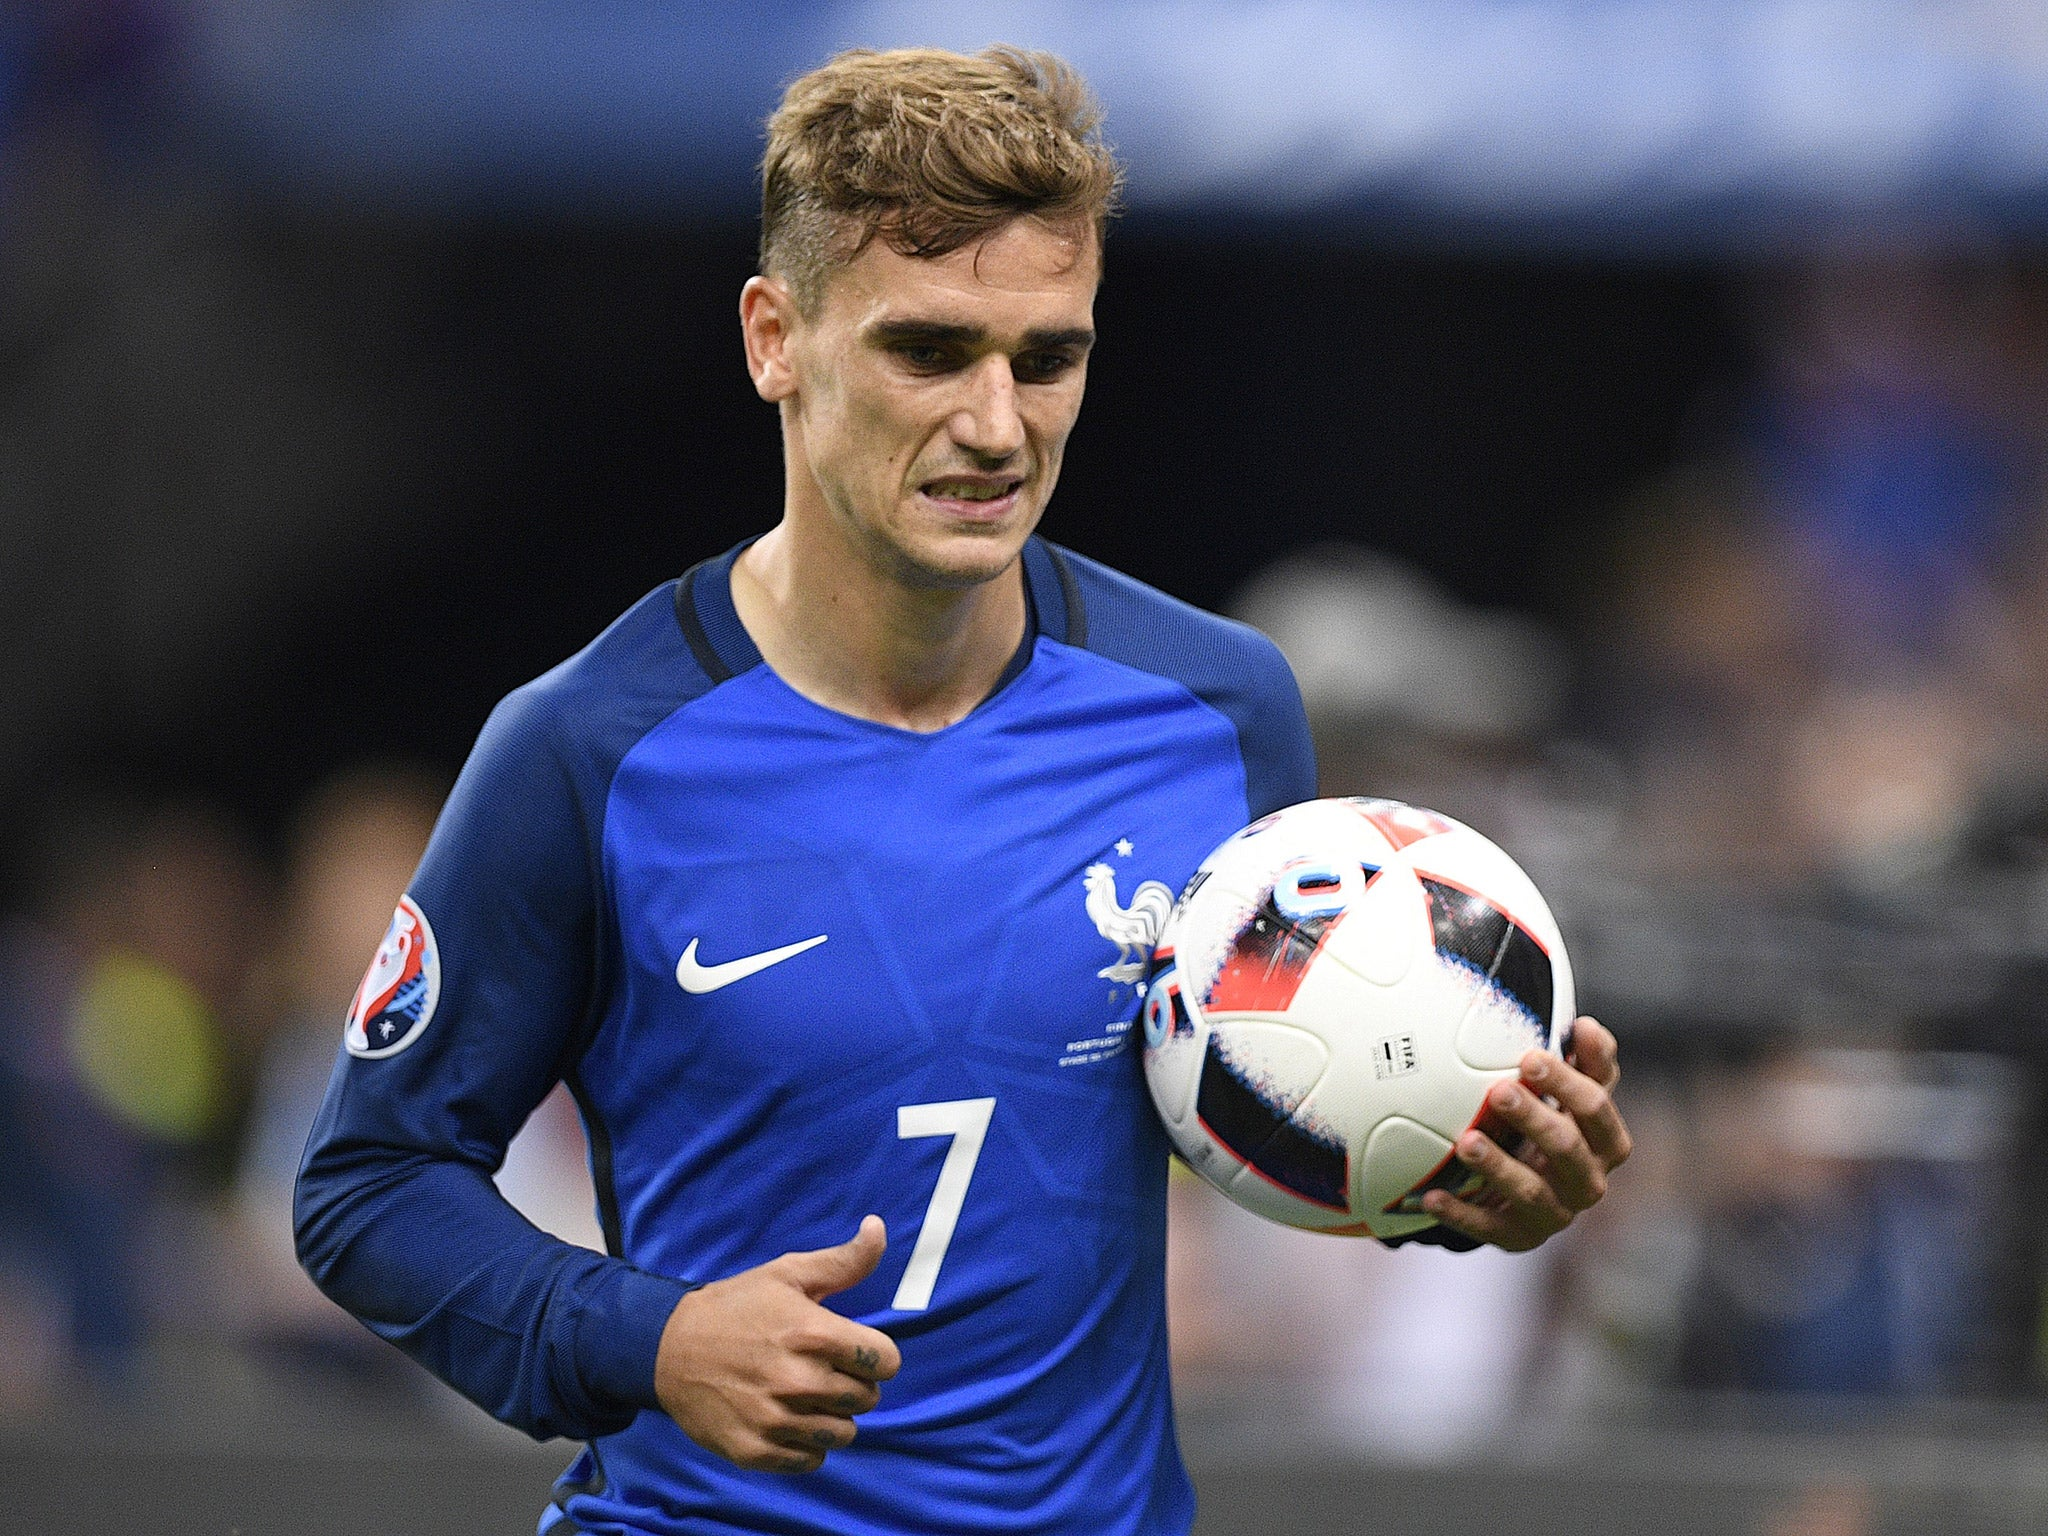 d18a2d257e788c Euro 2016  Gareth Bale snubbed from Team of the Tournament as Antoine  Griezmann named best player